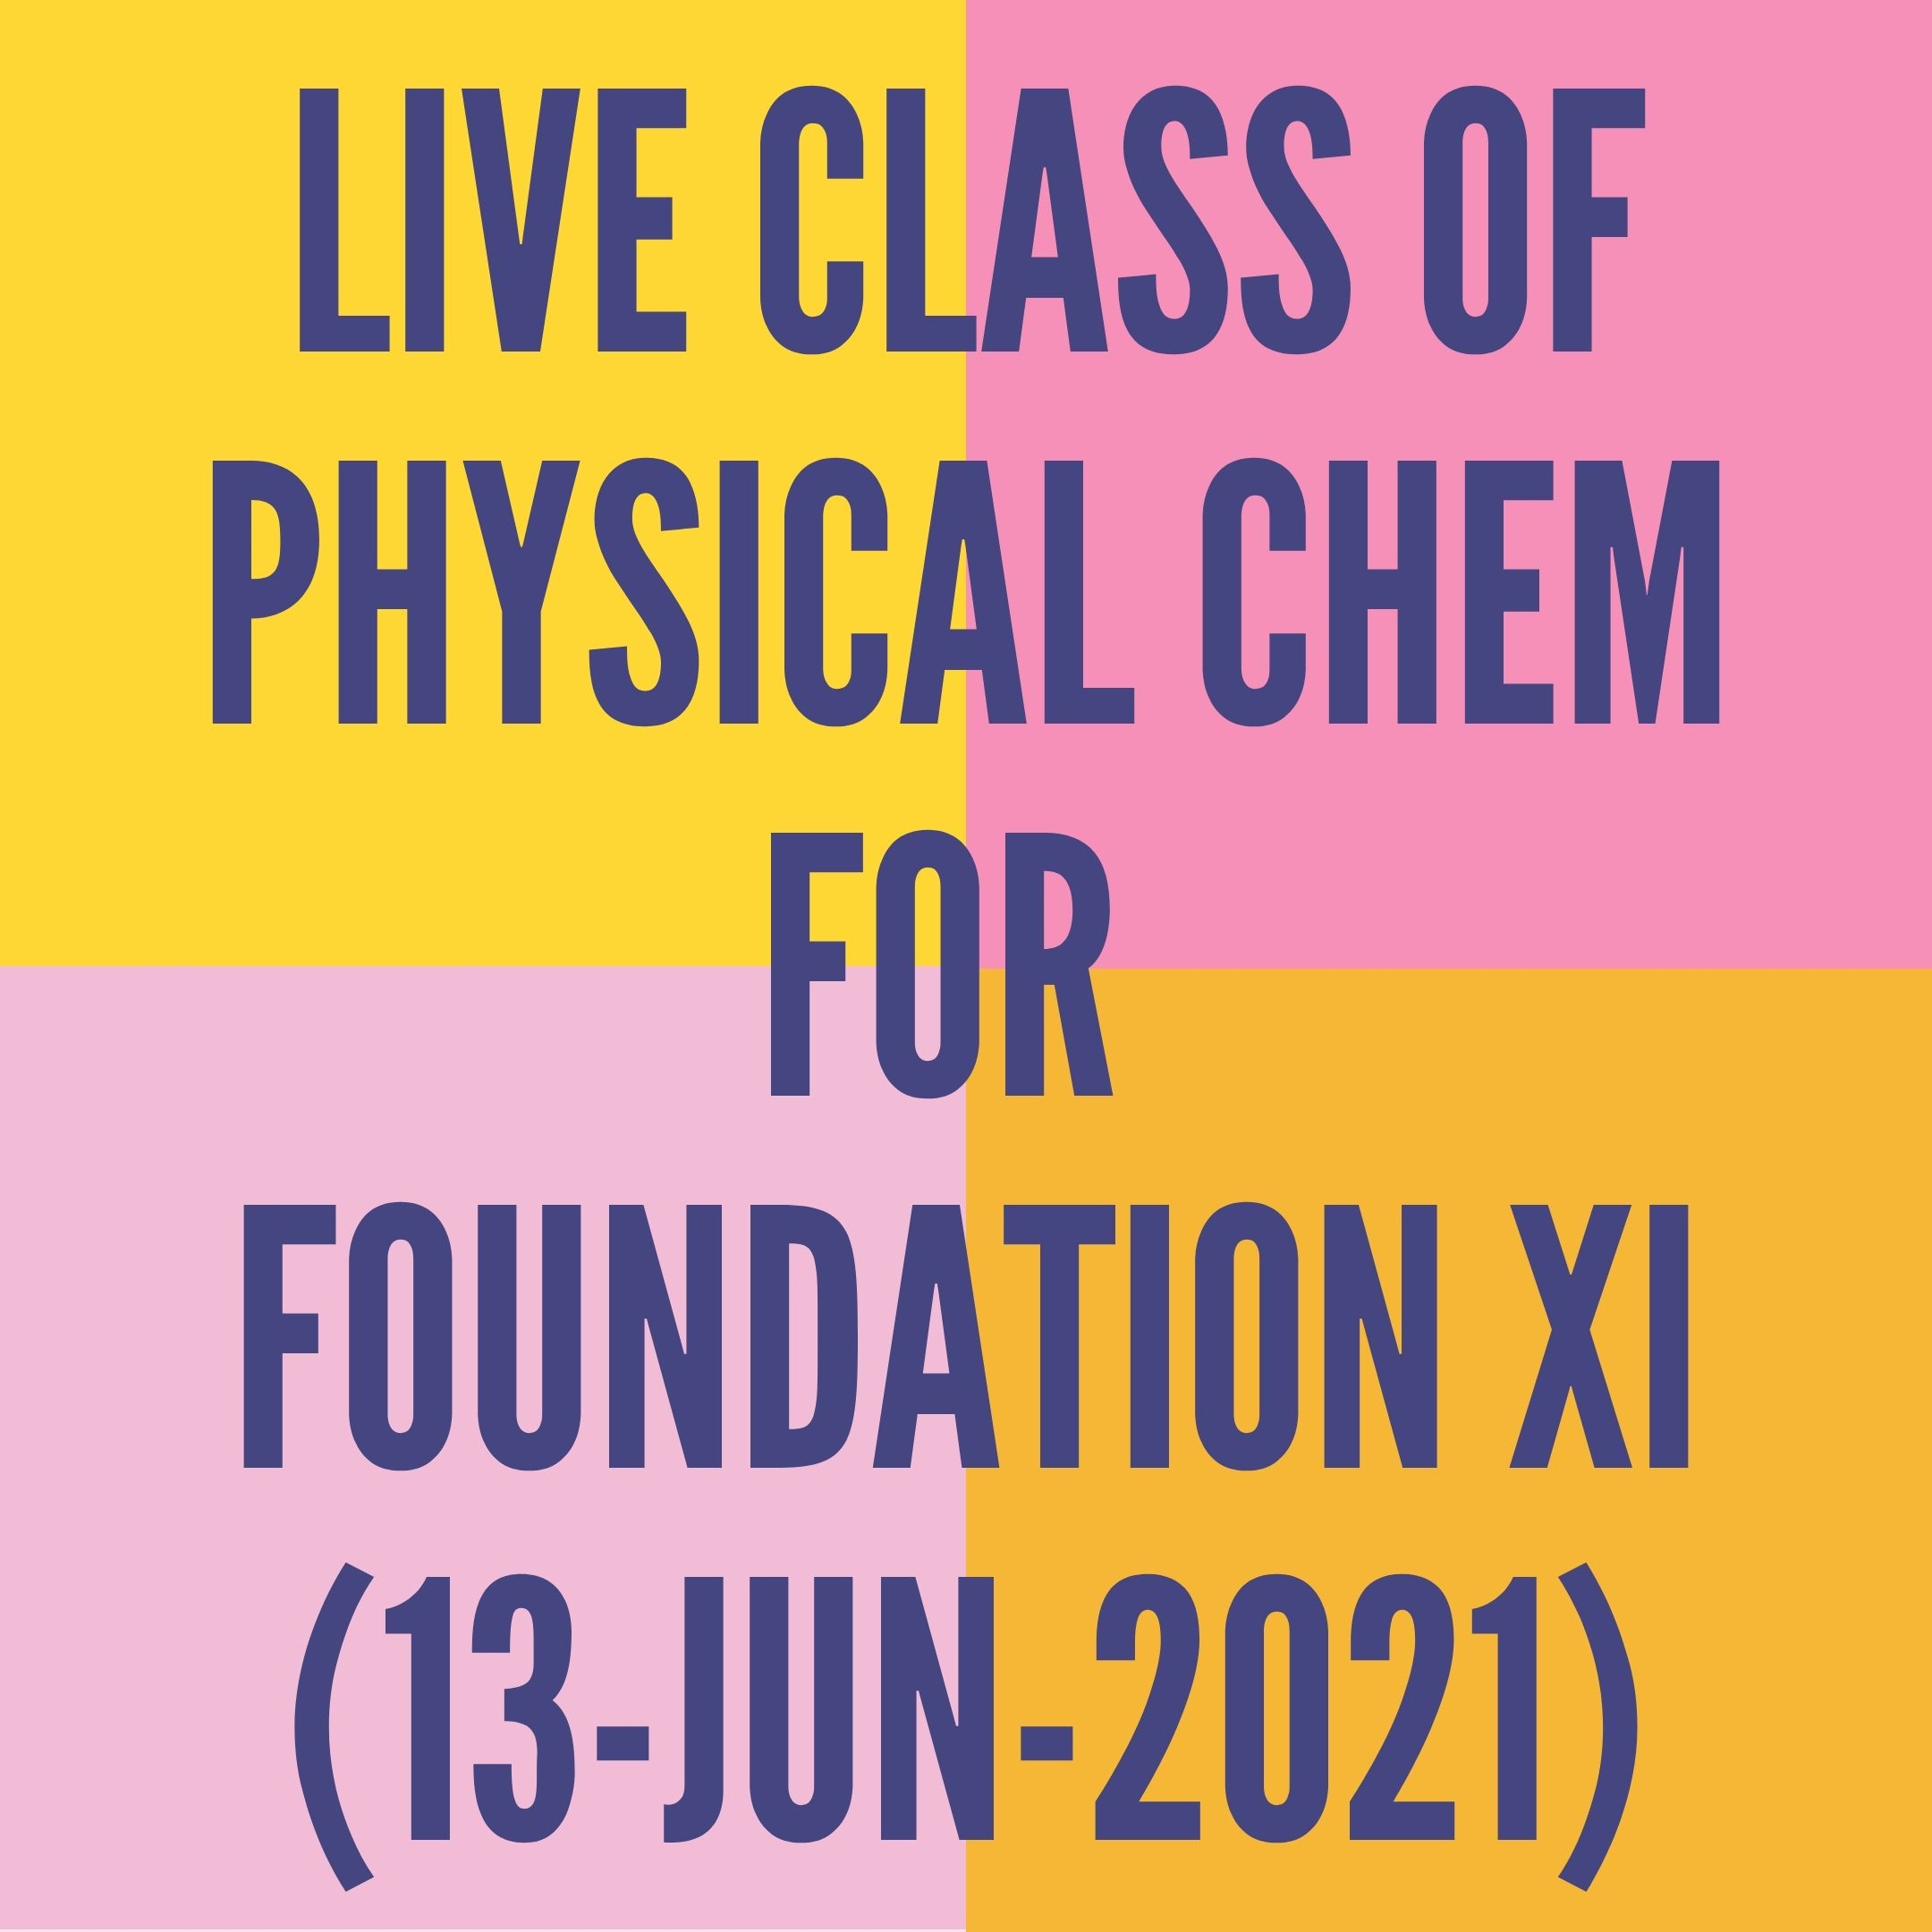 LIVE CLASS OF PHYSICAL CHEMISTRY FOR FOUNDATION XI (13-JUN-2021)SOME BASIC CONCEPT- MOLE